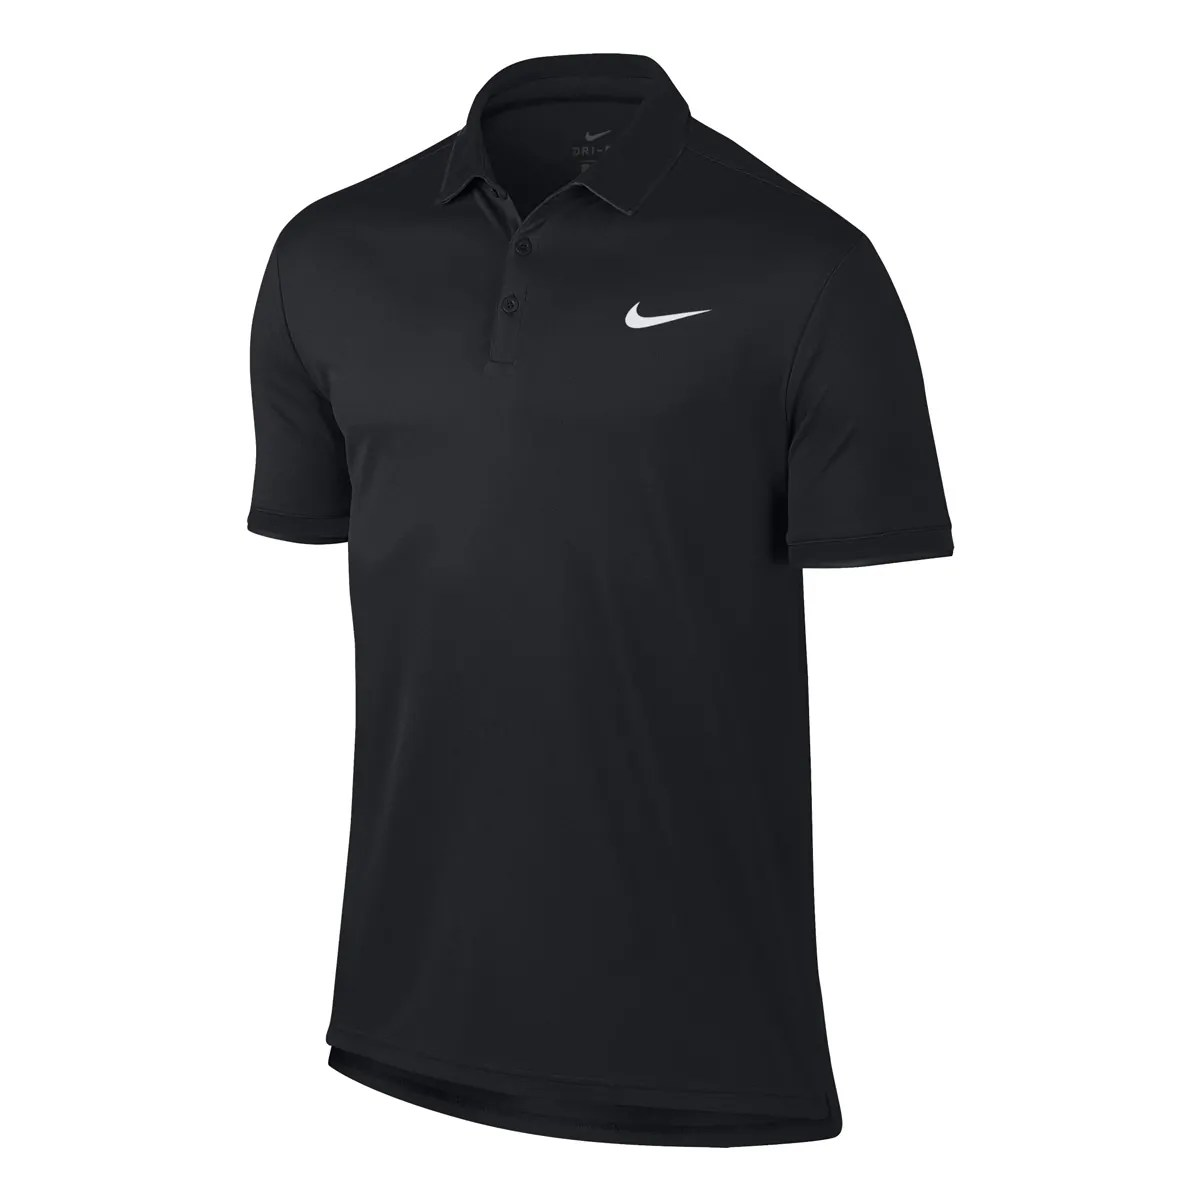 2c8bd284d5 Camiseta Nike Polo Dry Fit - Nike é aqui no Empório do Tenista